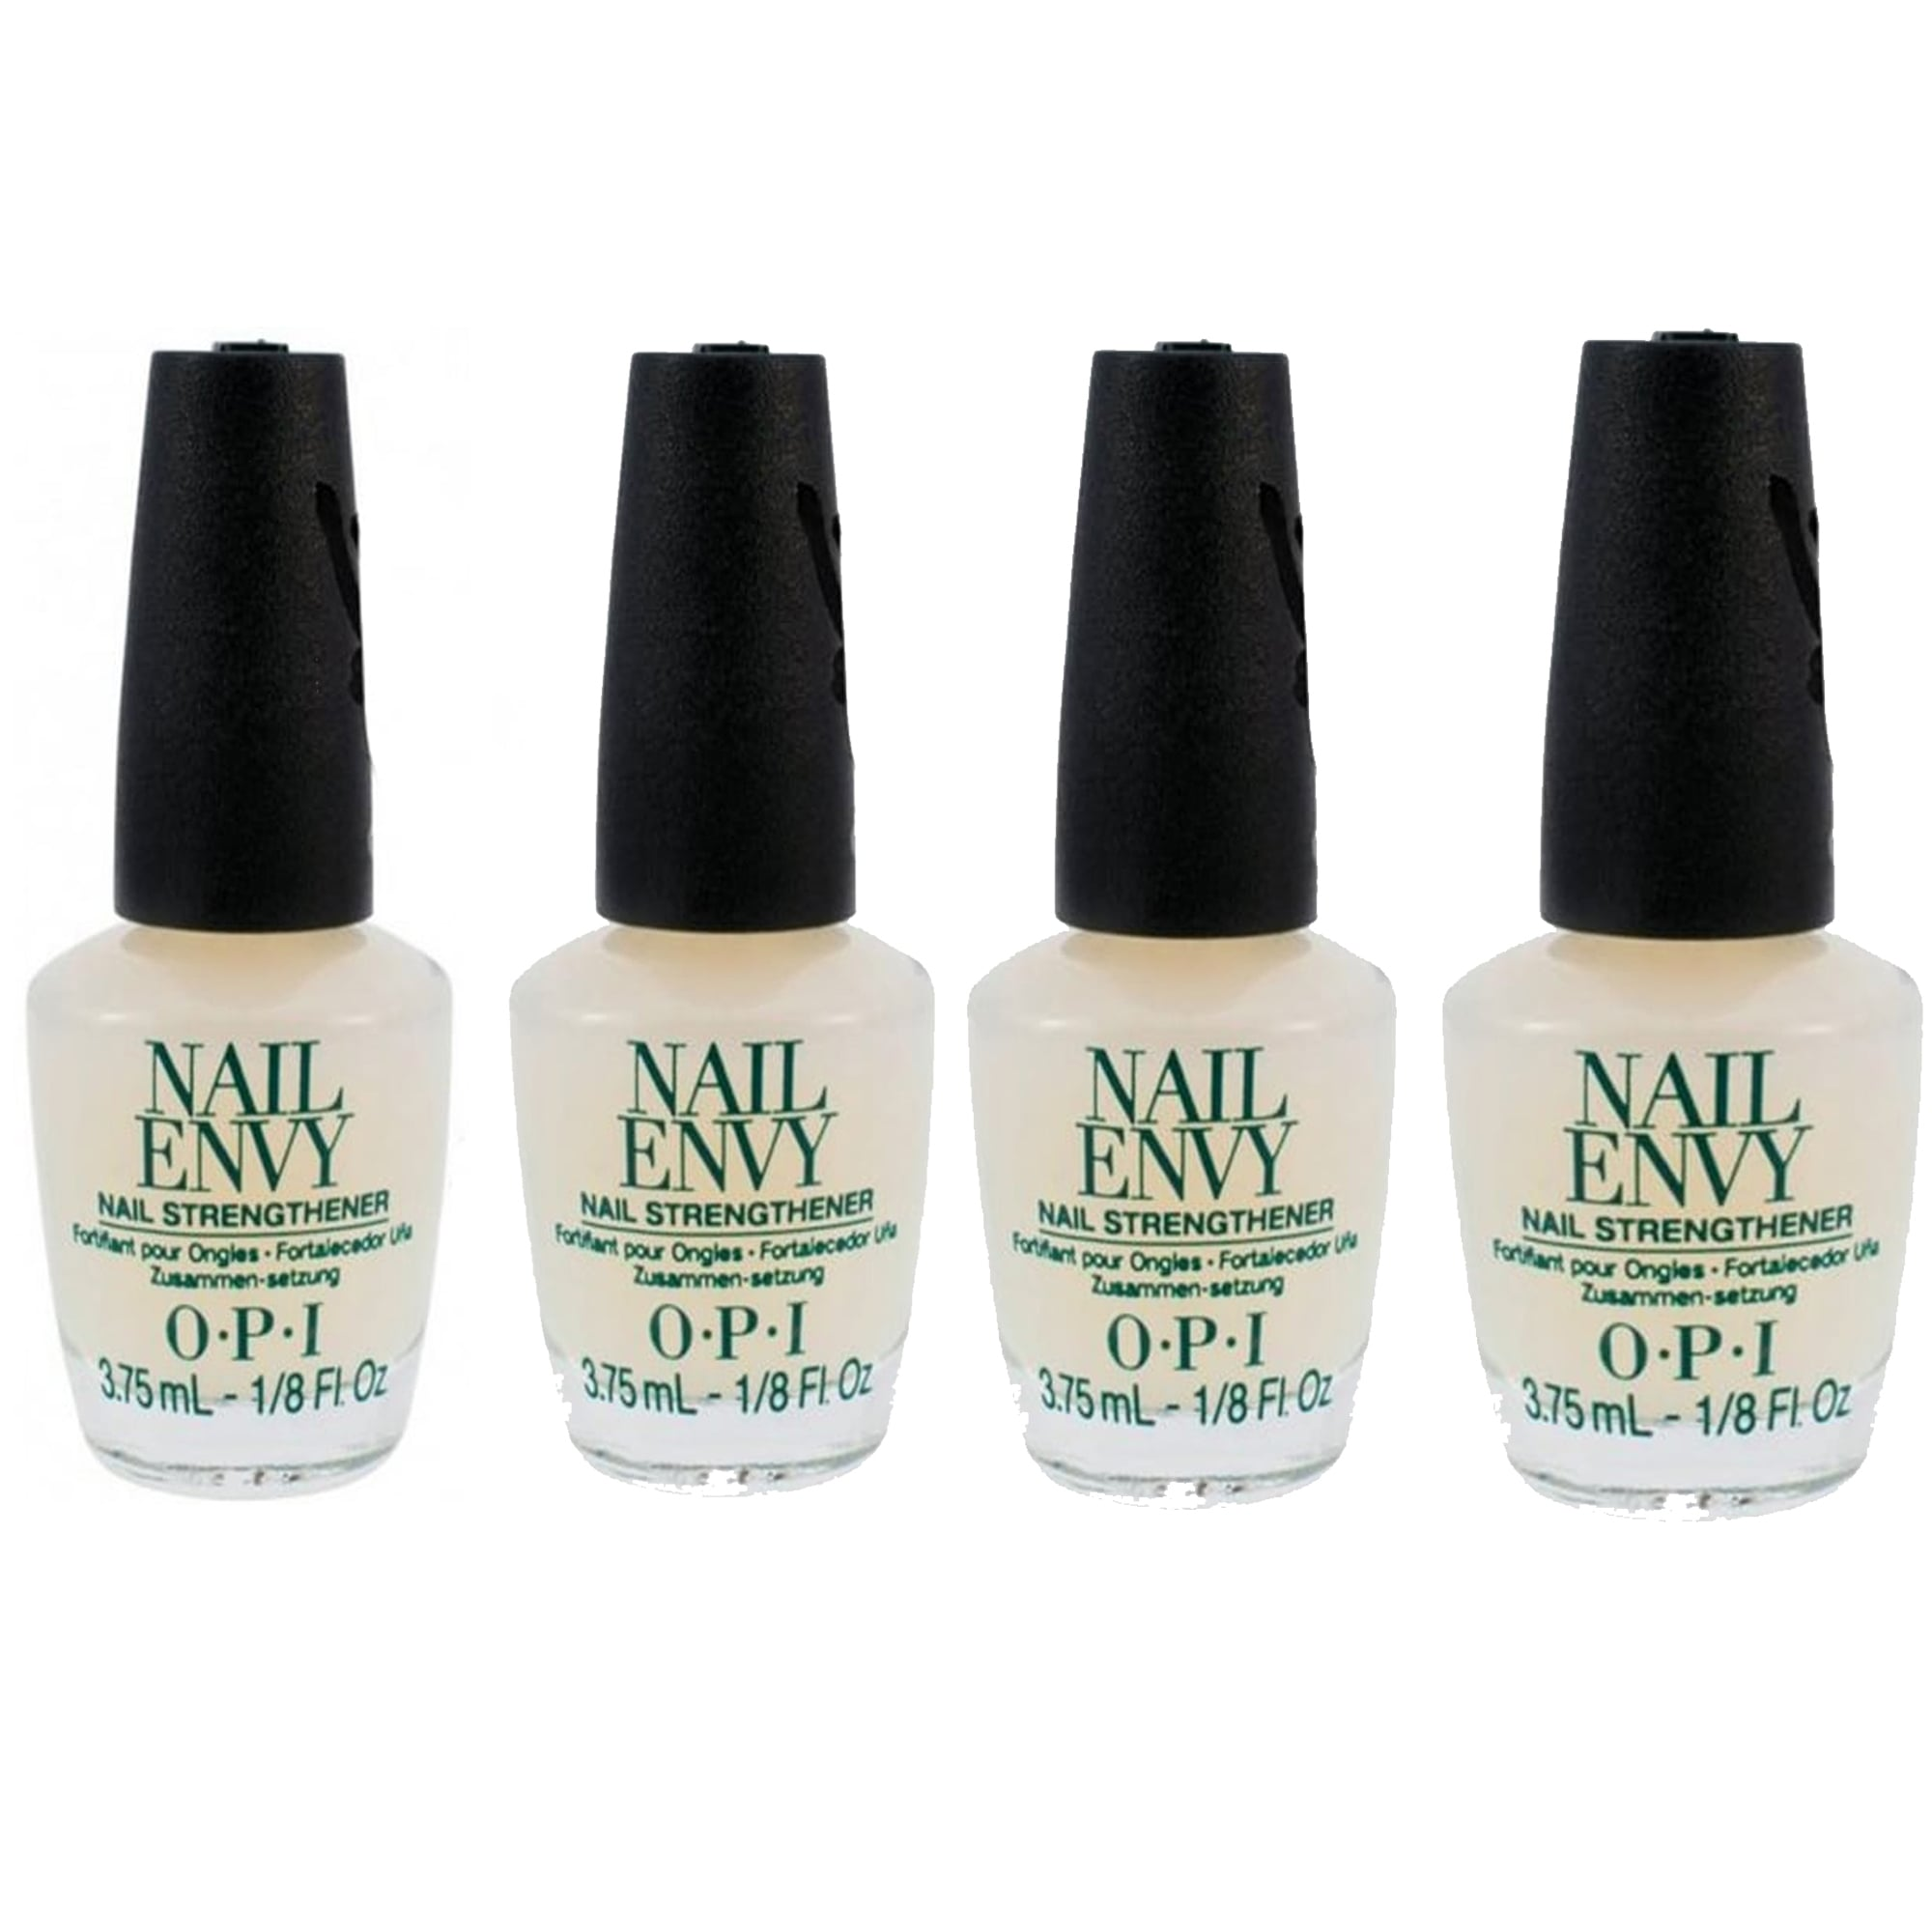 OPI Mini Treatment Nail Envy - Original Formula (3.75ML x 4)